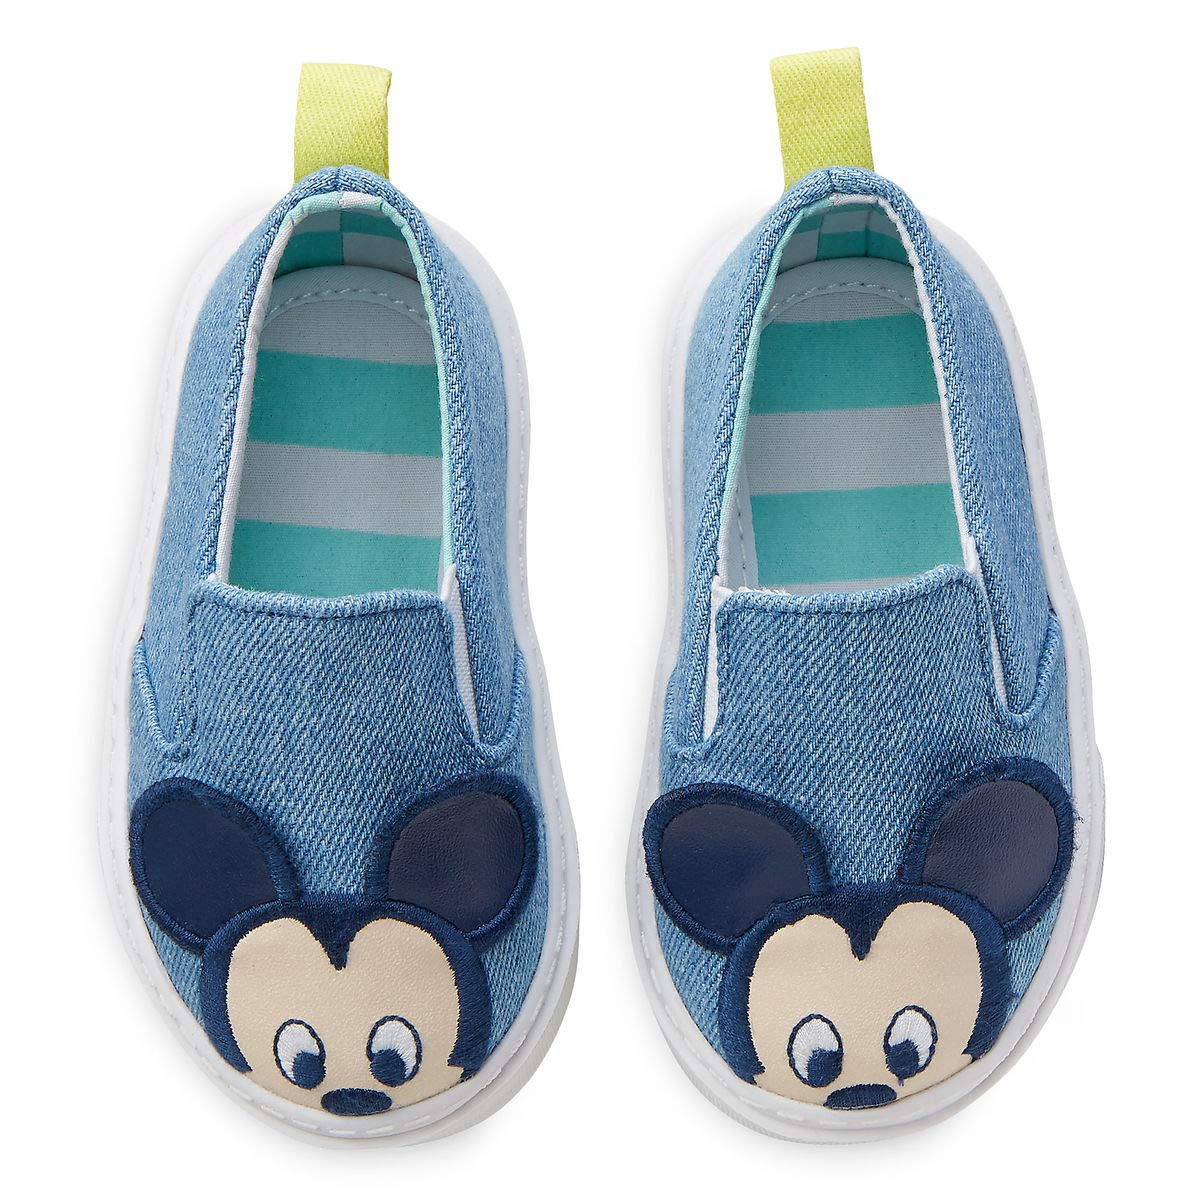 Disney Mickey Mouse Shoes for Baby Size 0-6 MO Multi